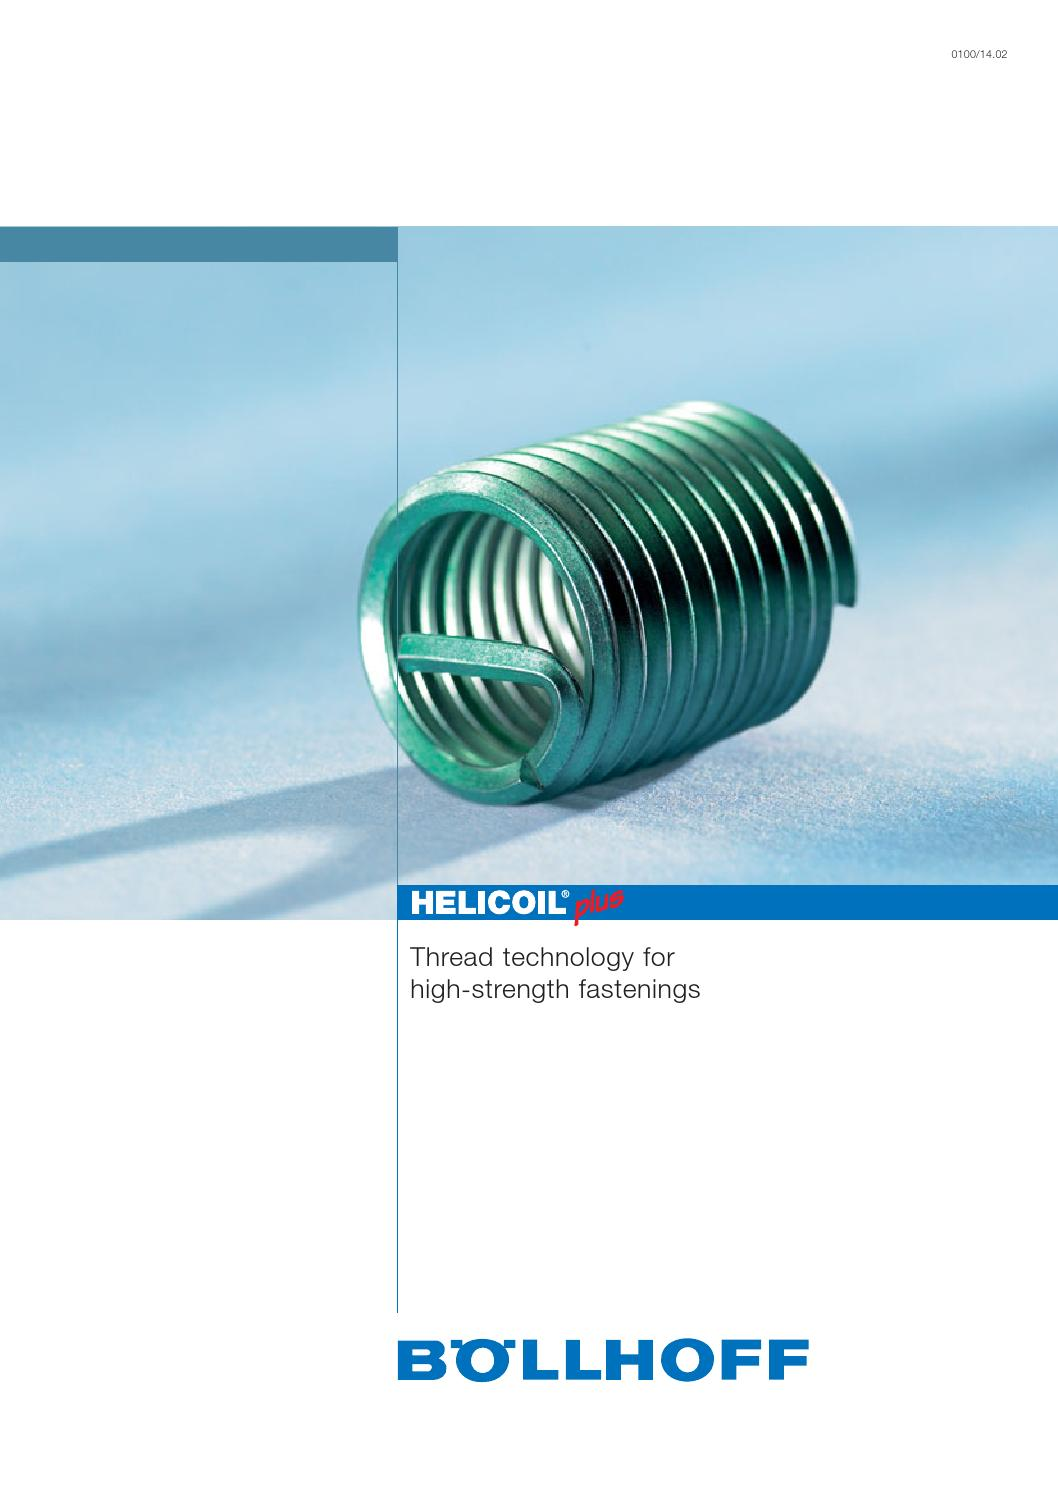 10 Off V-Coil Thread Repair Inserts M12 x 1.75 Compatible With Helicoil 3D